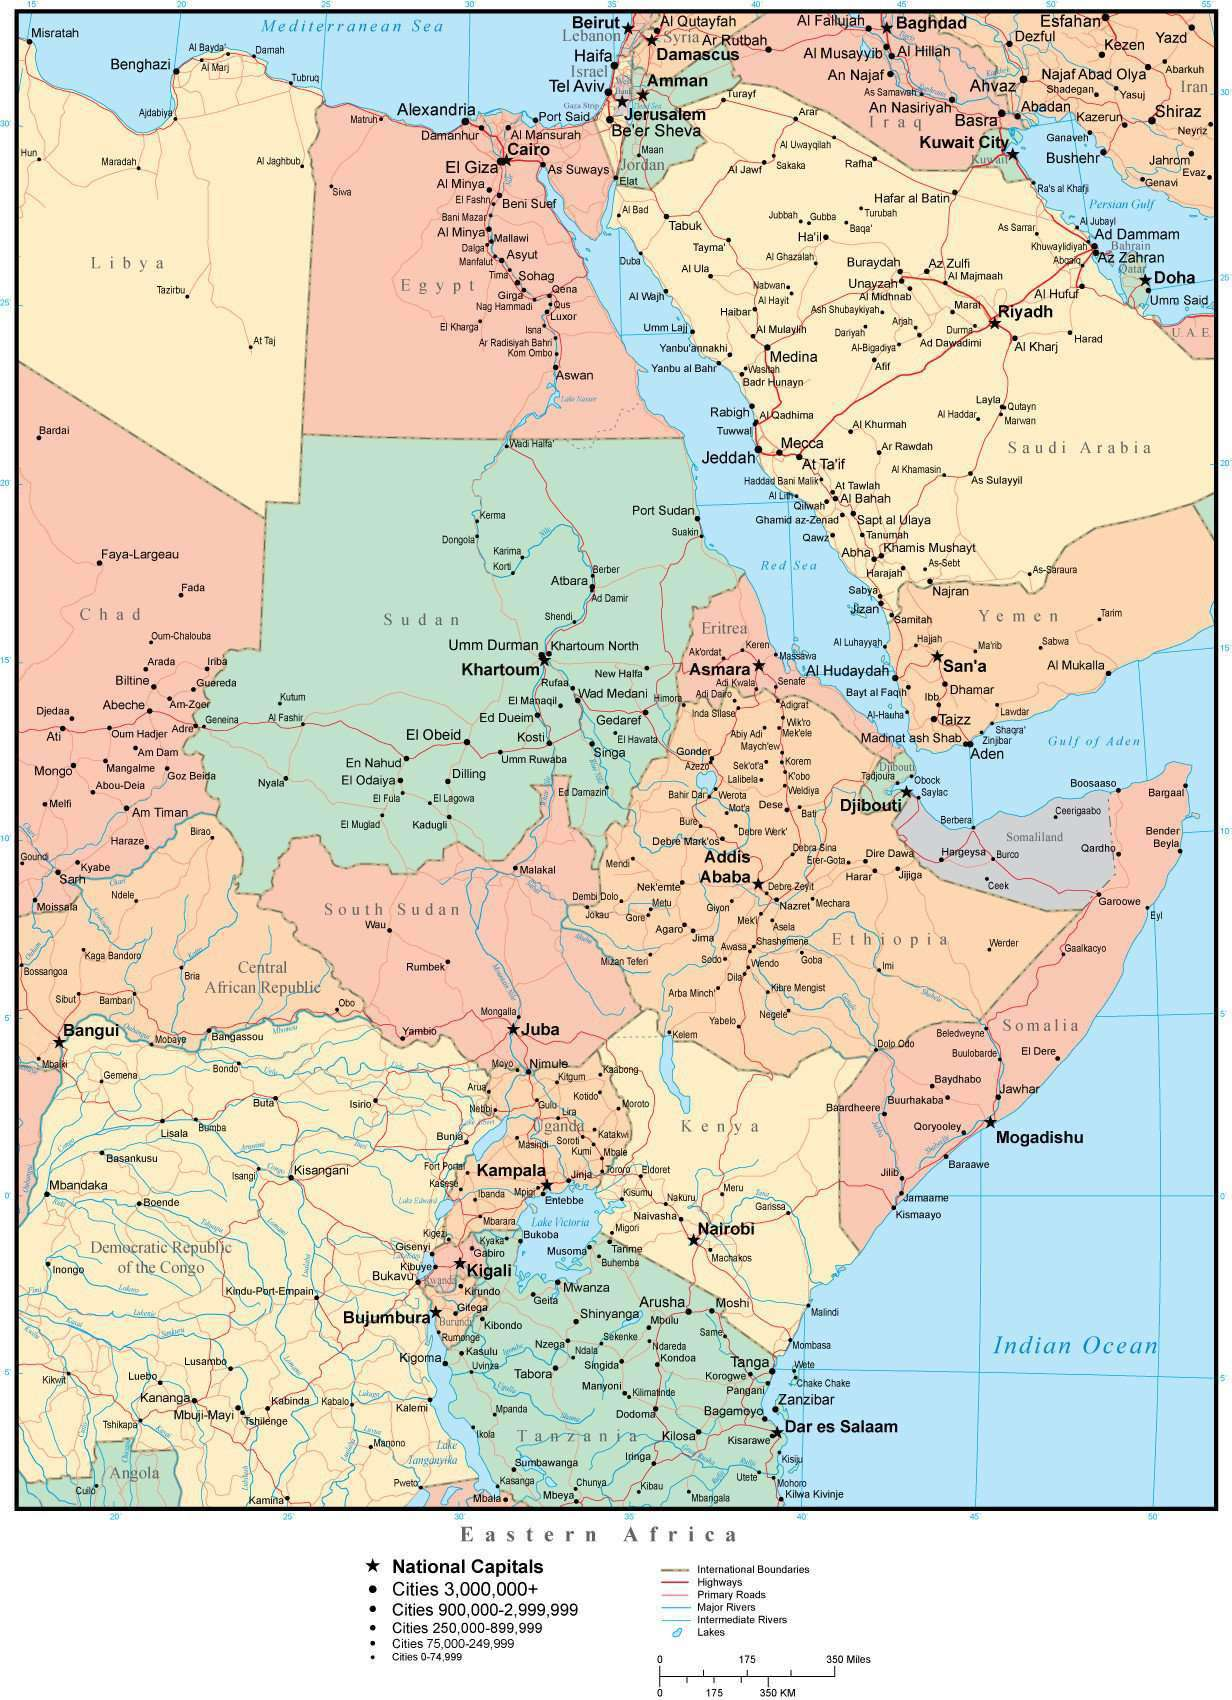 Eastern Africa Map with Countries, Capitals, Cities, Roads and Water  Features